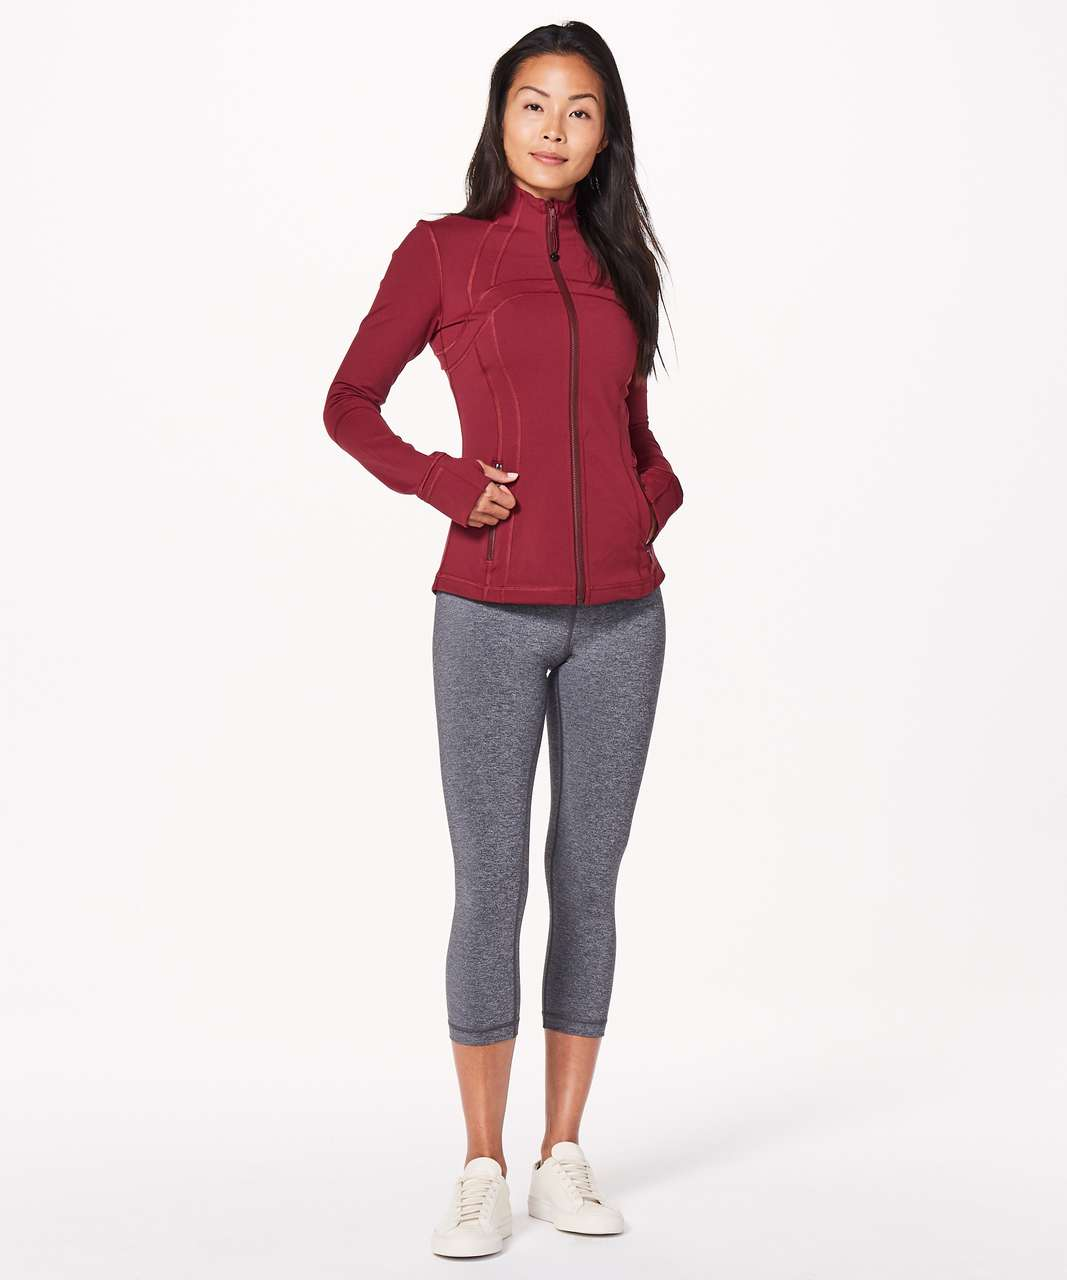 Lululemon Define Jacket - Ruby Wine